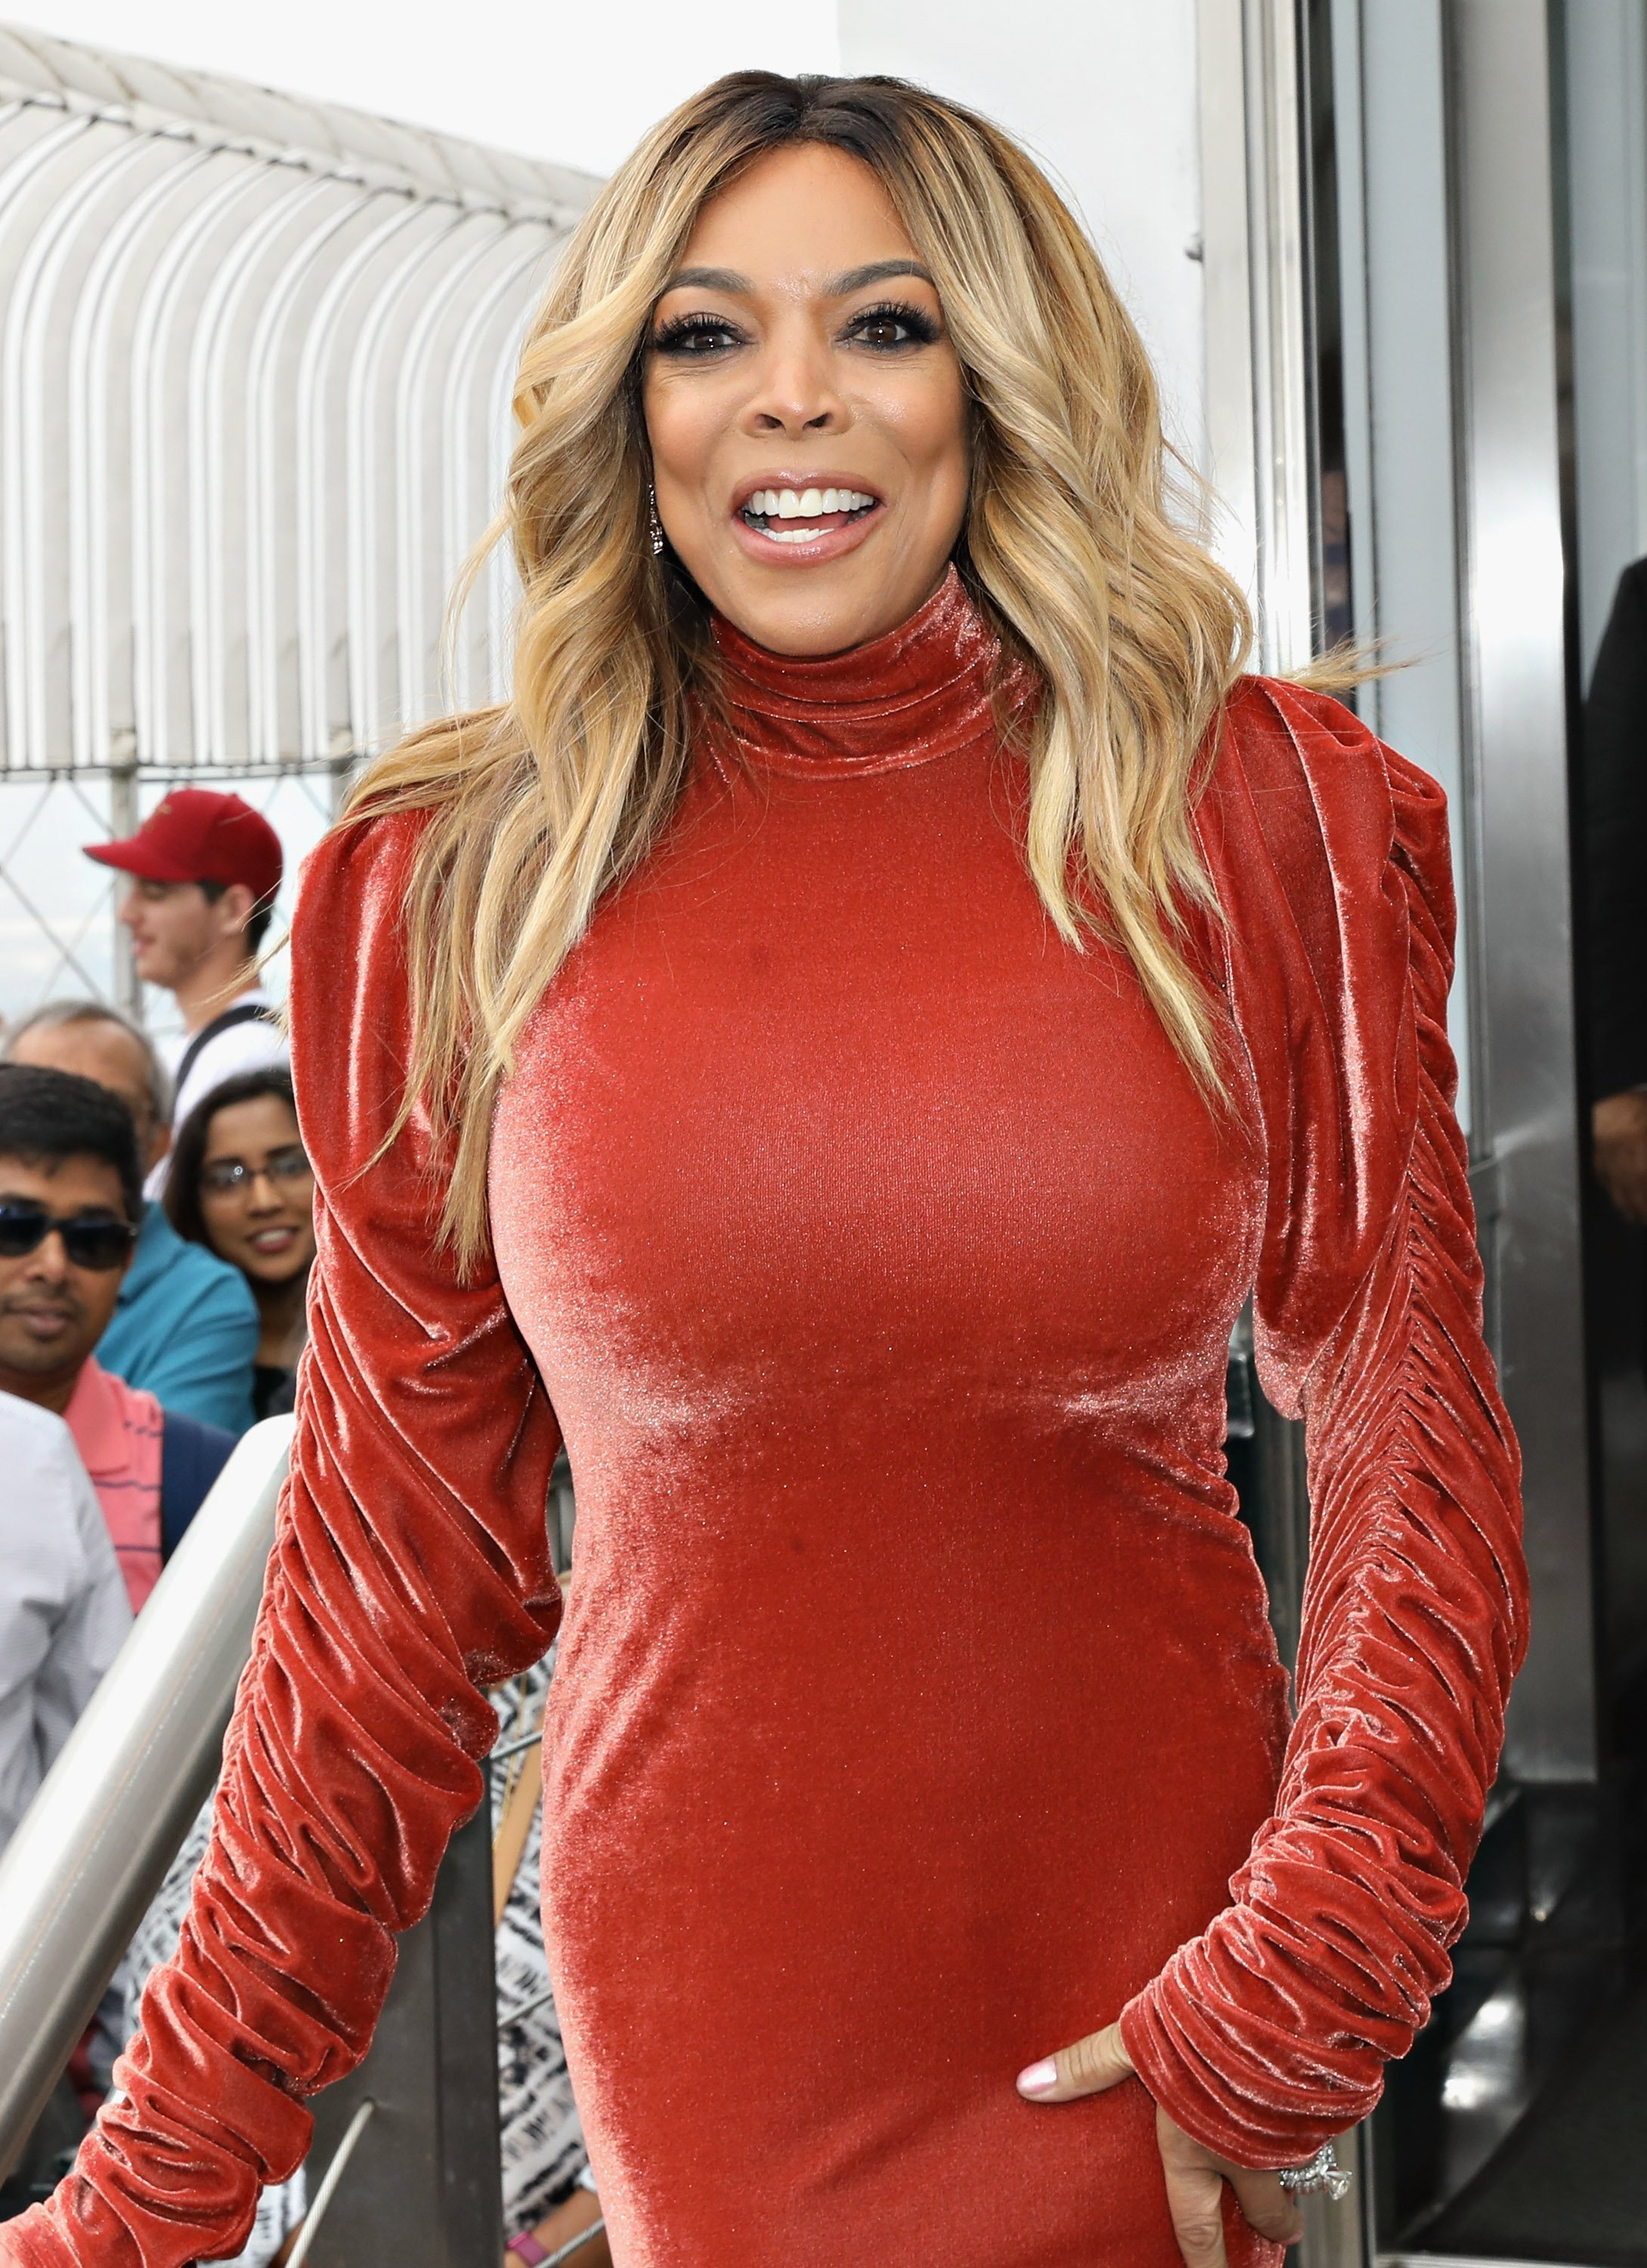 """Wendy Williams celebrating the ninth season of """"The Wendy Williams Show"""" on Sept. 18, 2017 in New York City 